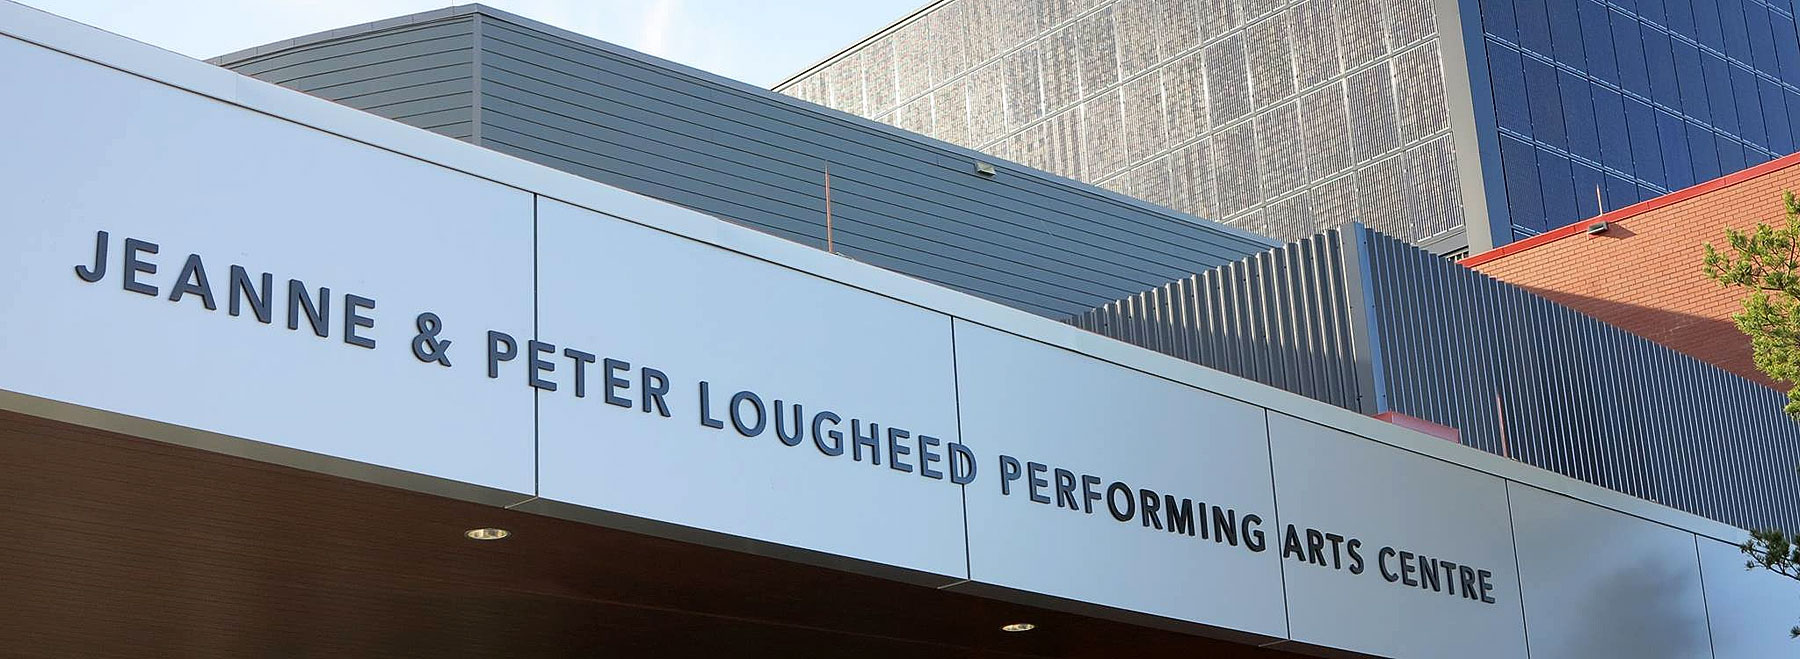 Jeanne and Peter Lougheed Performing Arts Centre